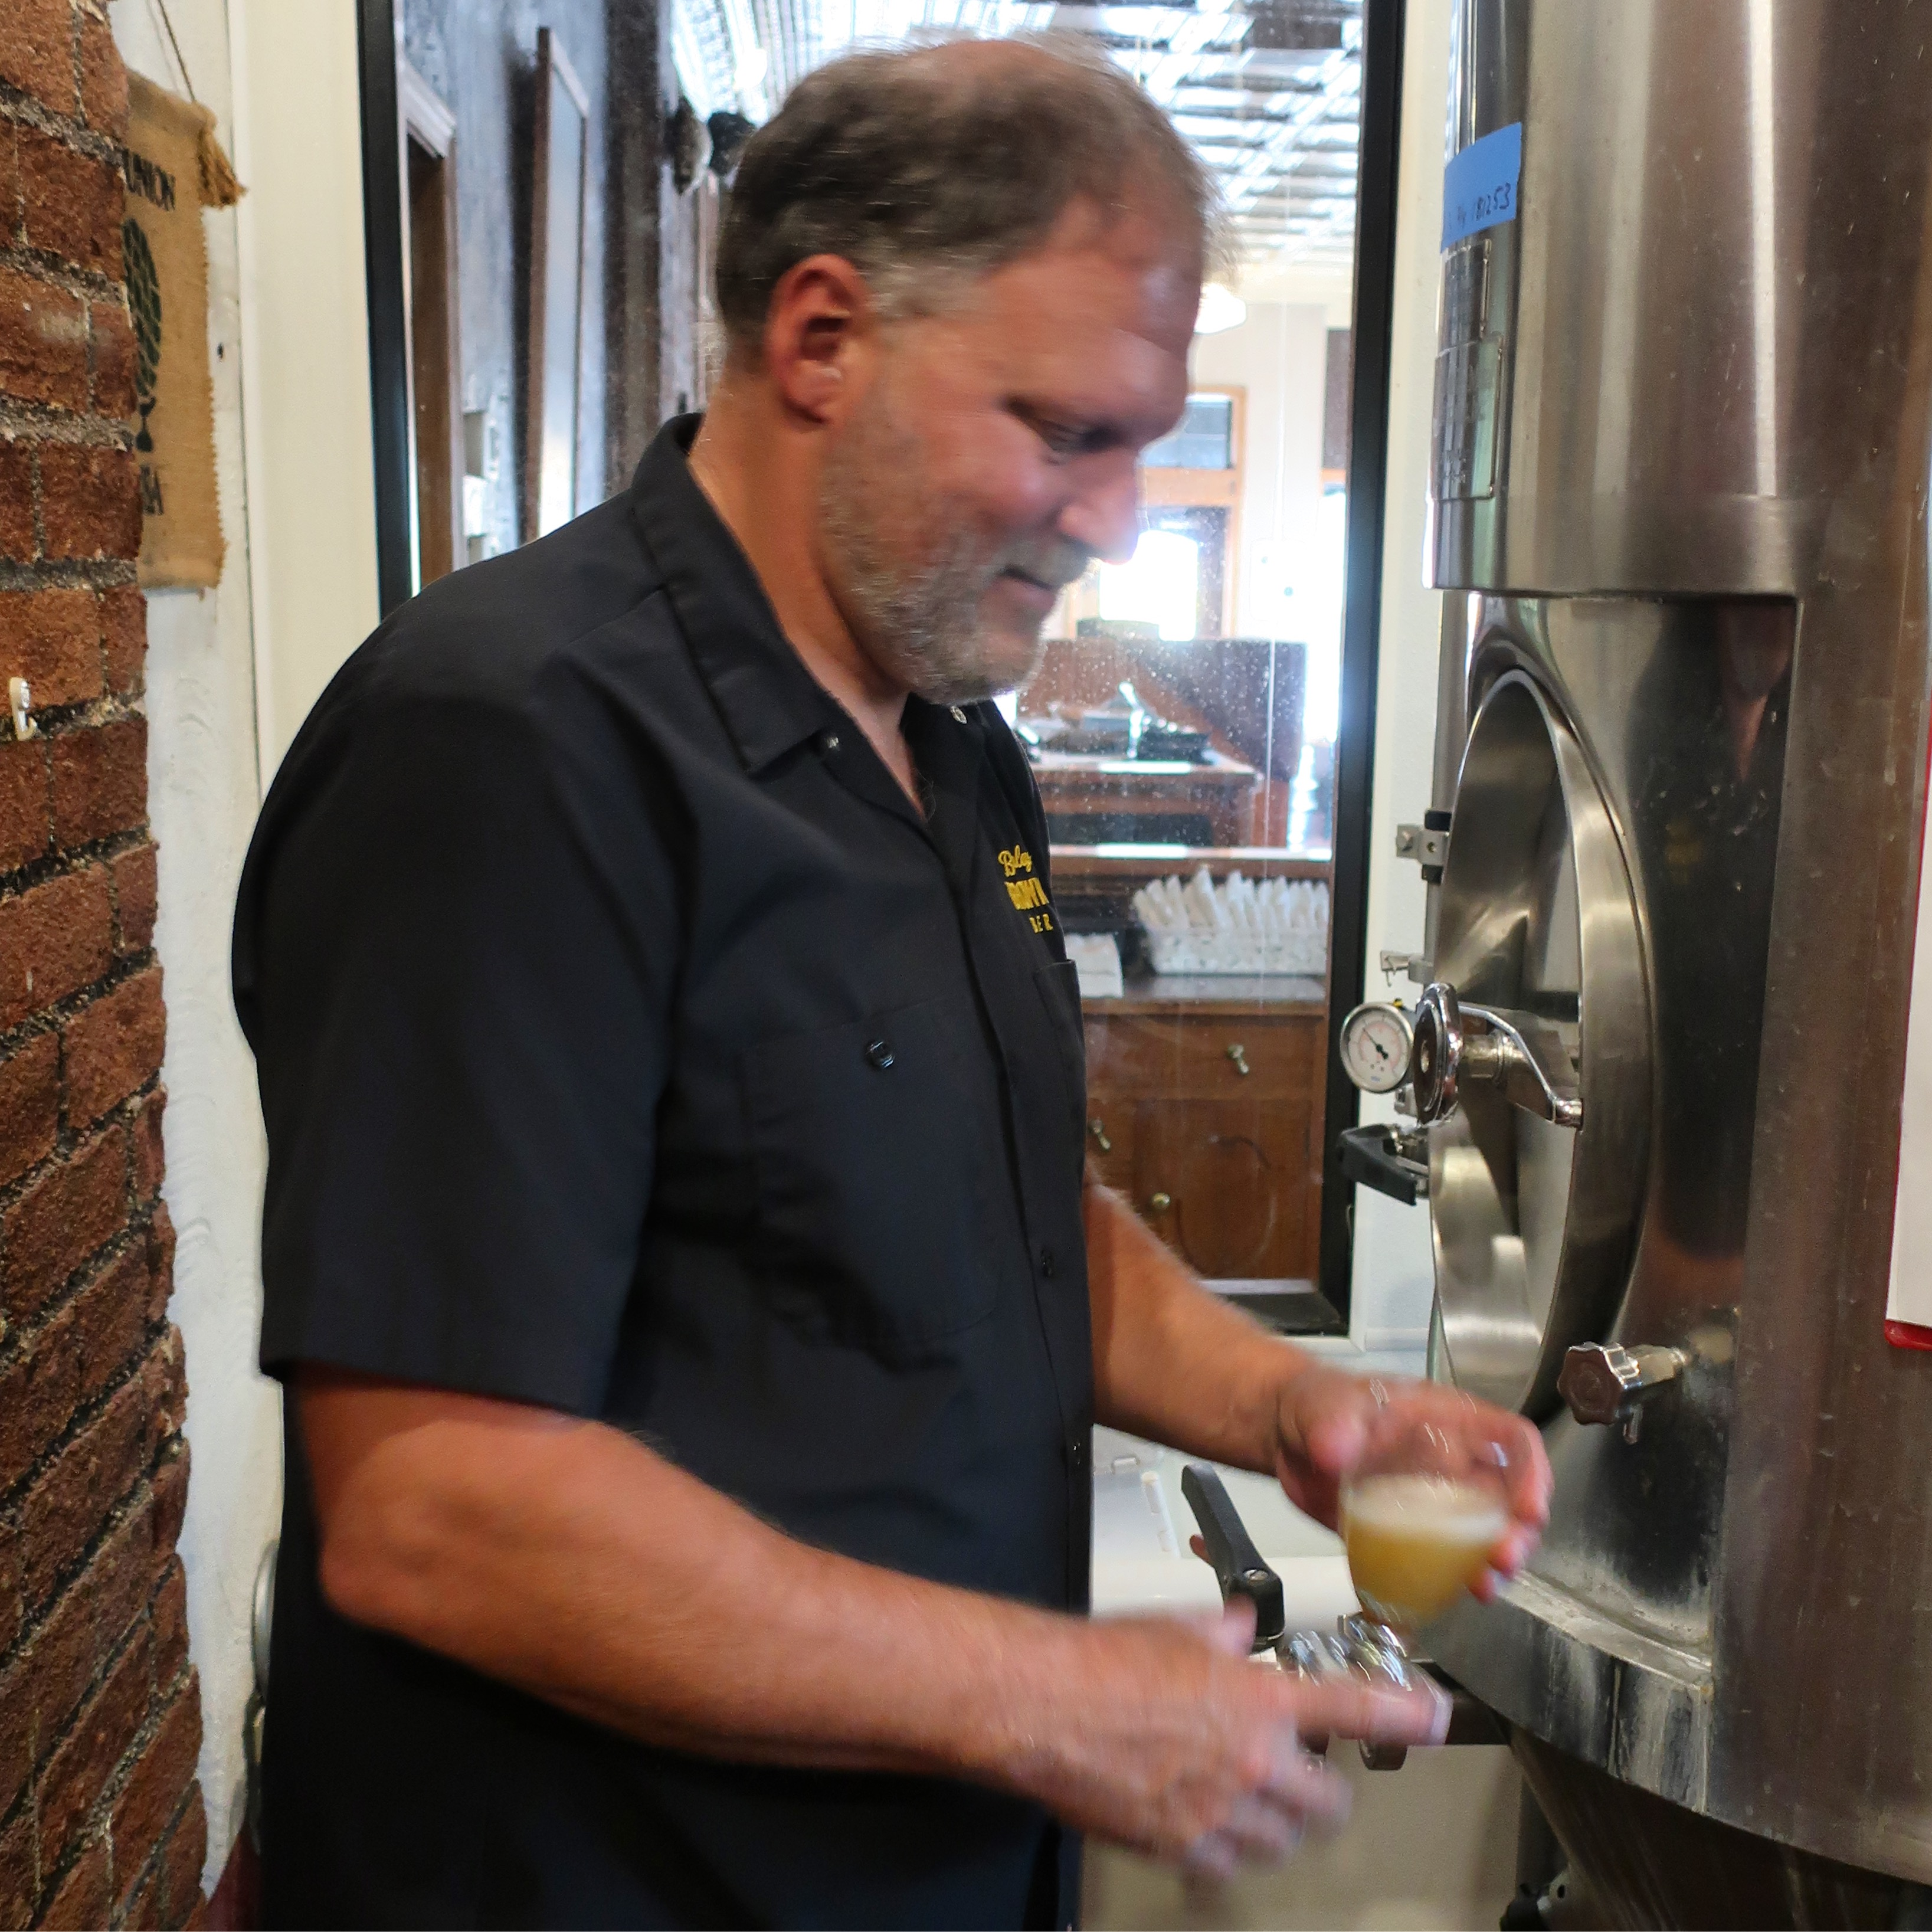 Tyler Brown pouring a beer off the zwickel at Barley Brown's Beer in Baker City, Oregon.